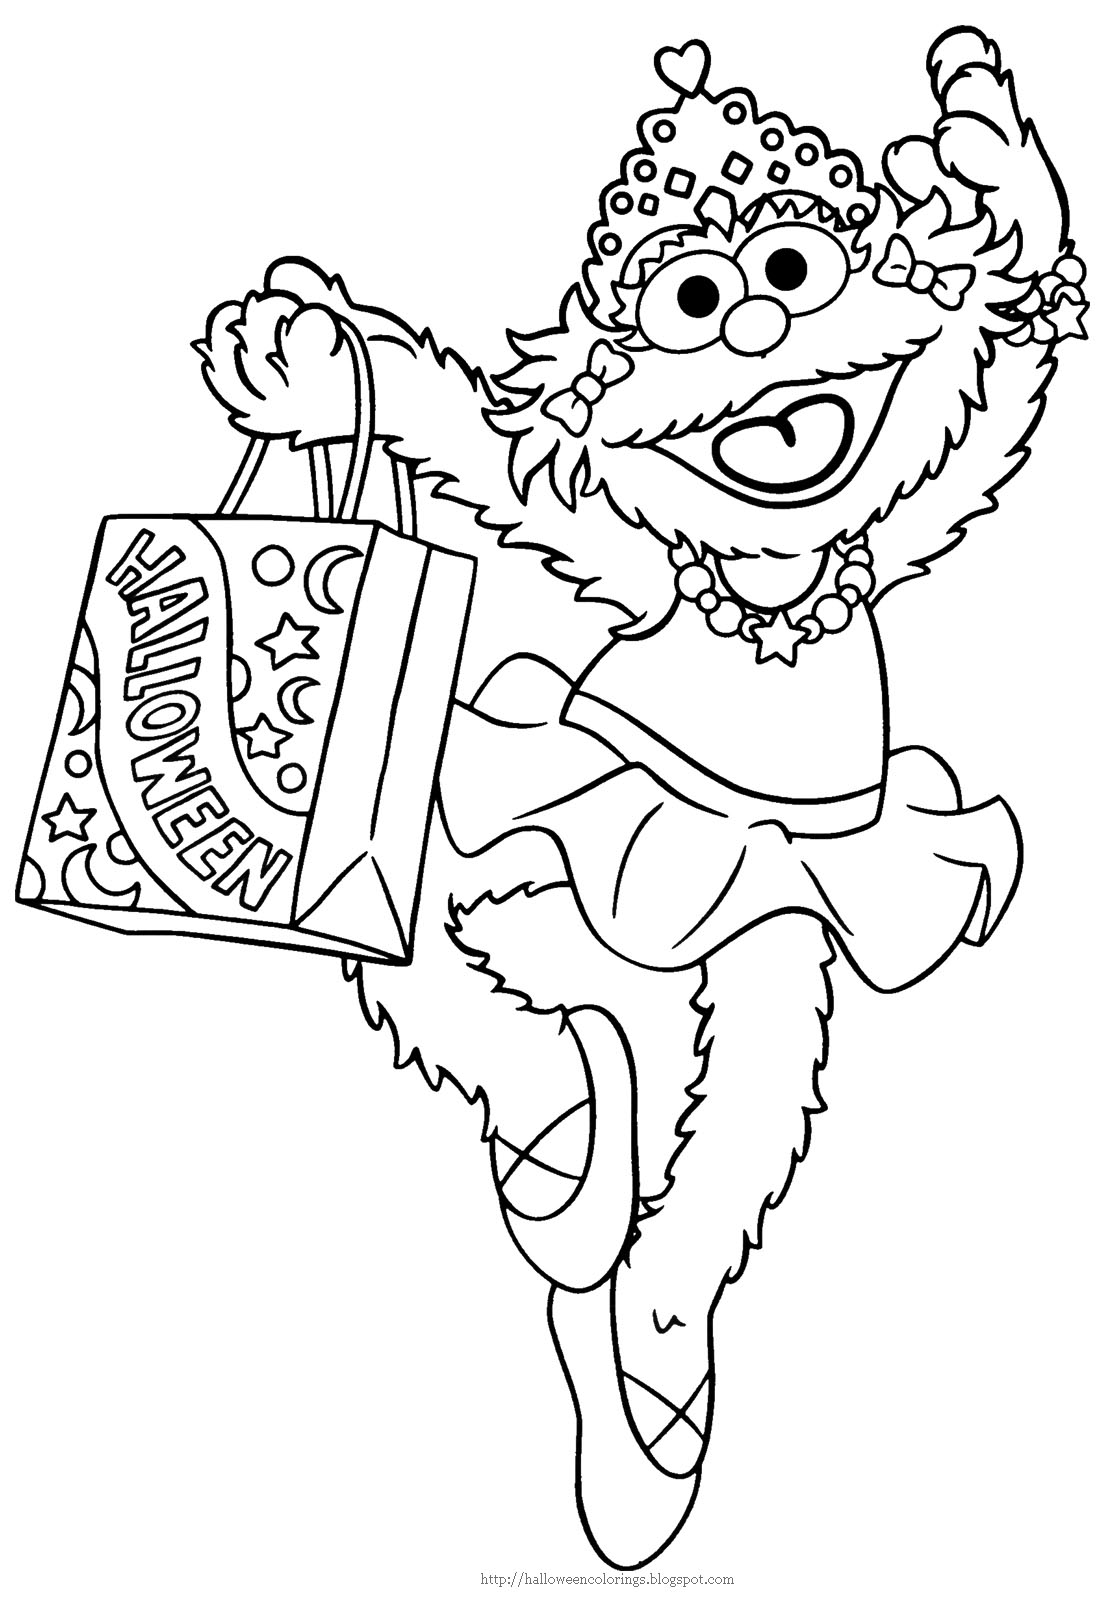 Elmo Halloween Coloring Pages at GetDrawings   Free download